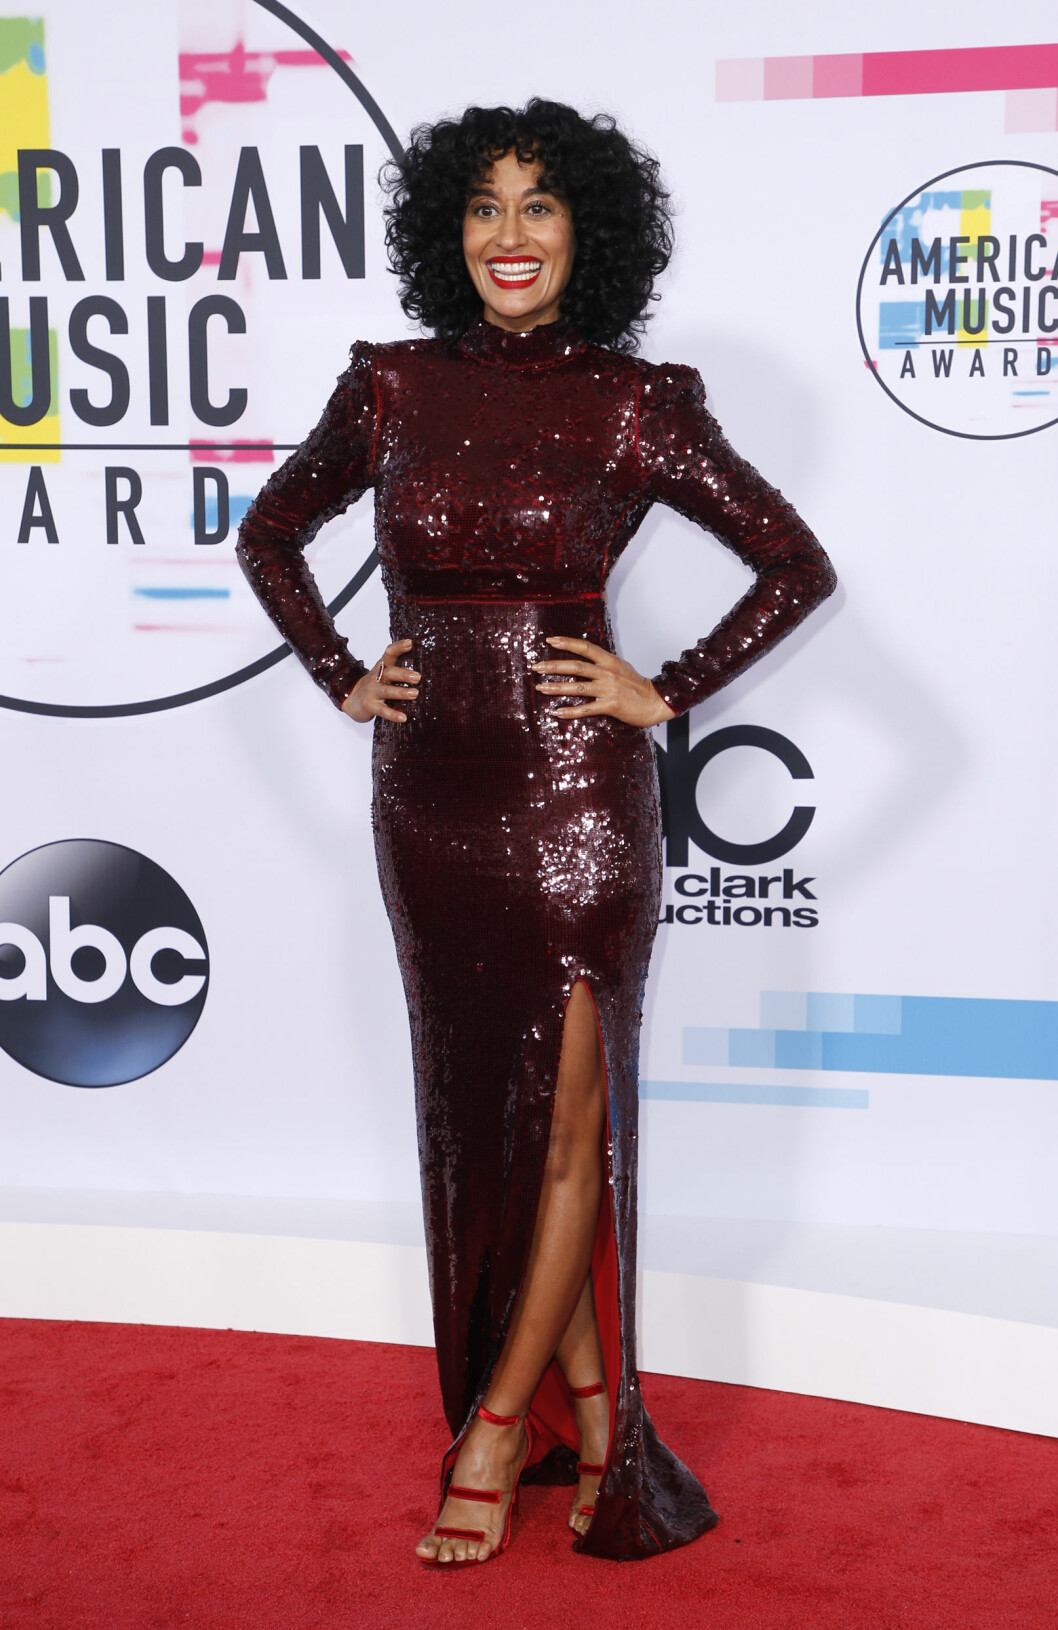 AMERICAN MUSIC AWARDS: Tracee Ellis Ross